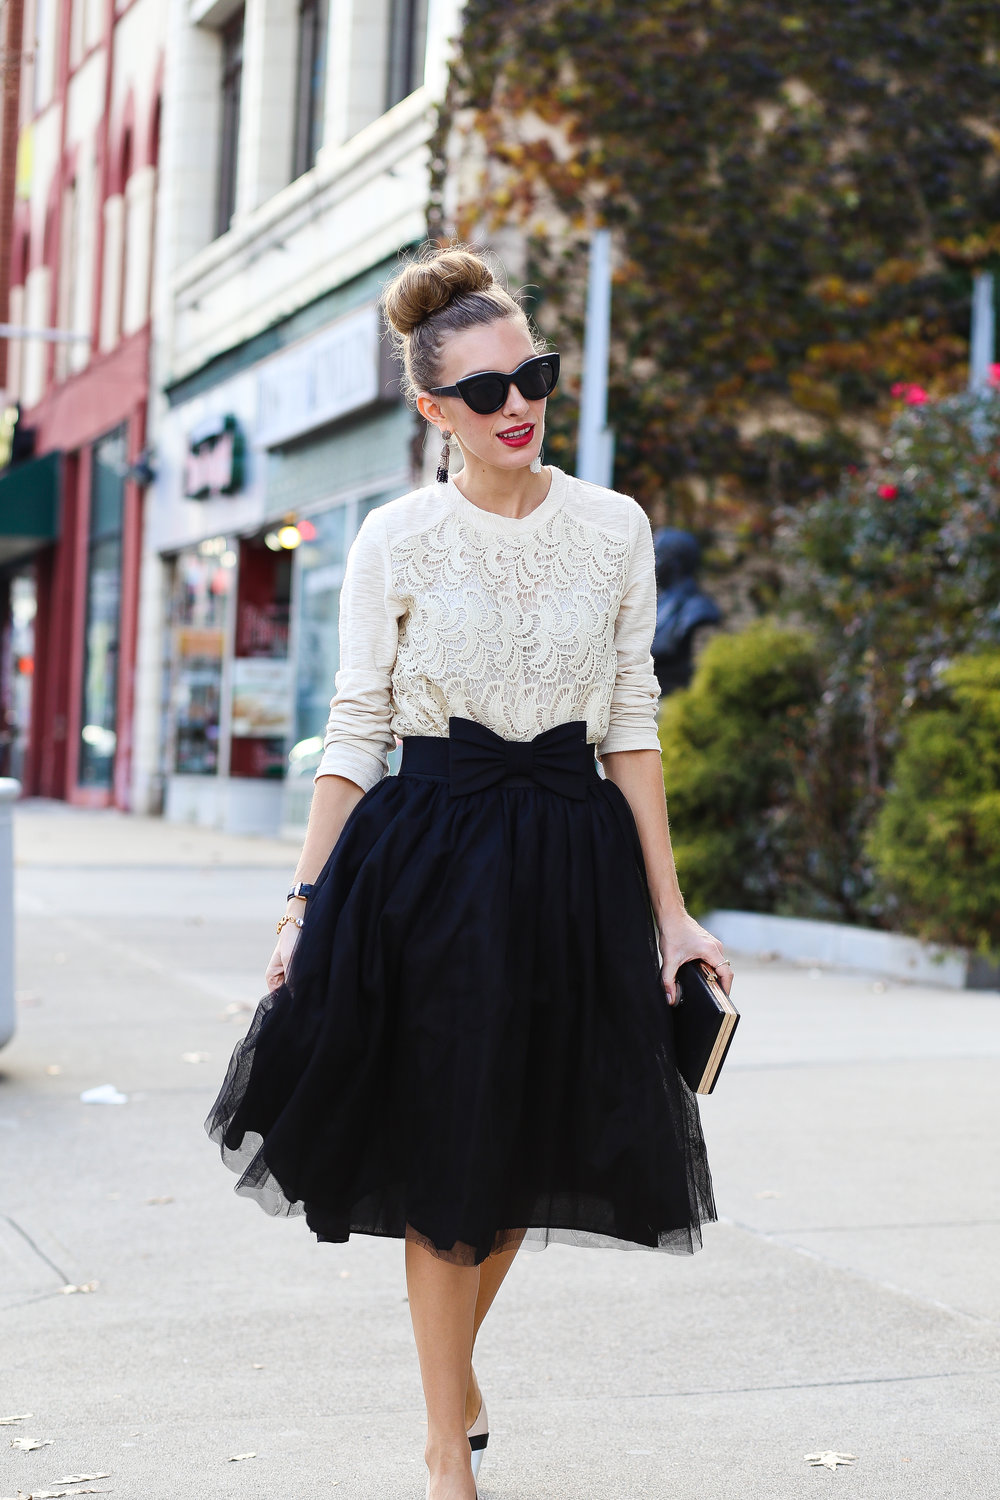 Creamy Crochet And Tulle- Enchanting Elegance